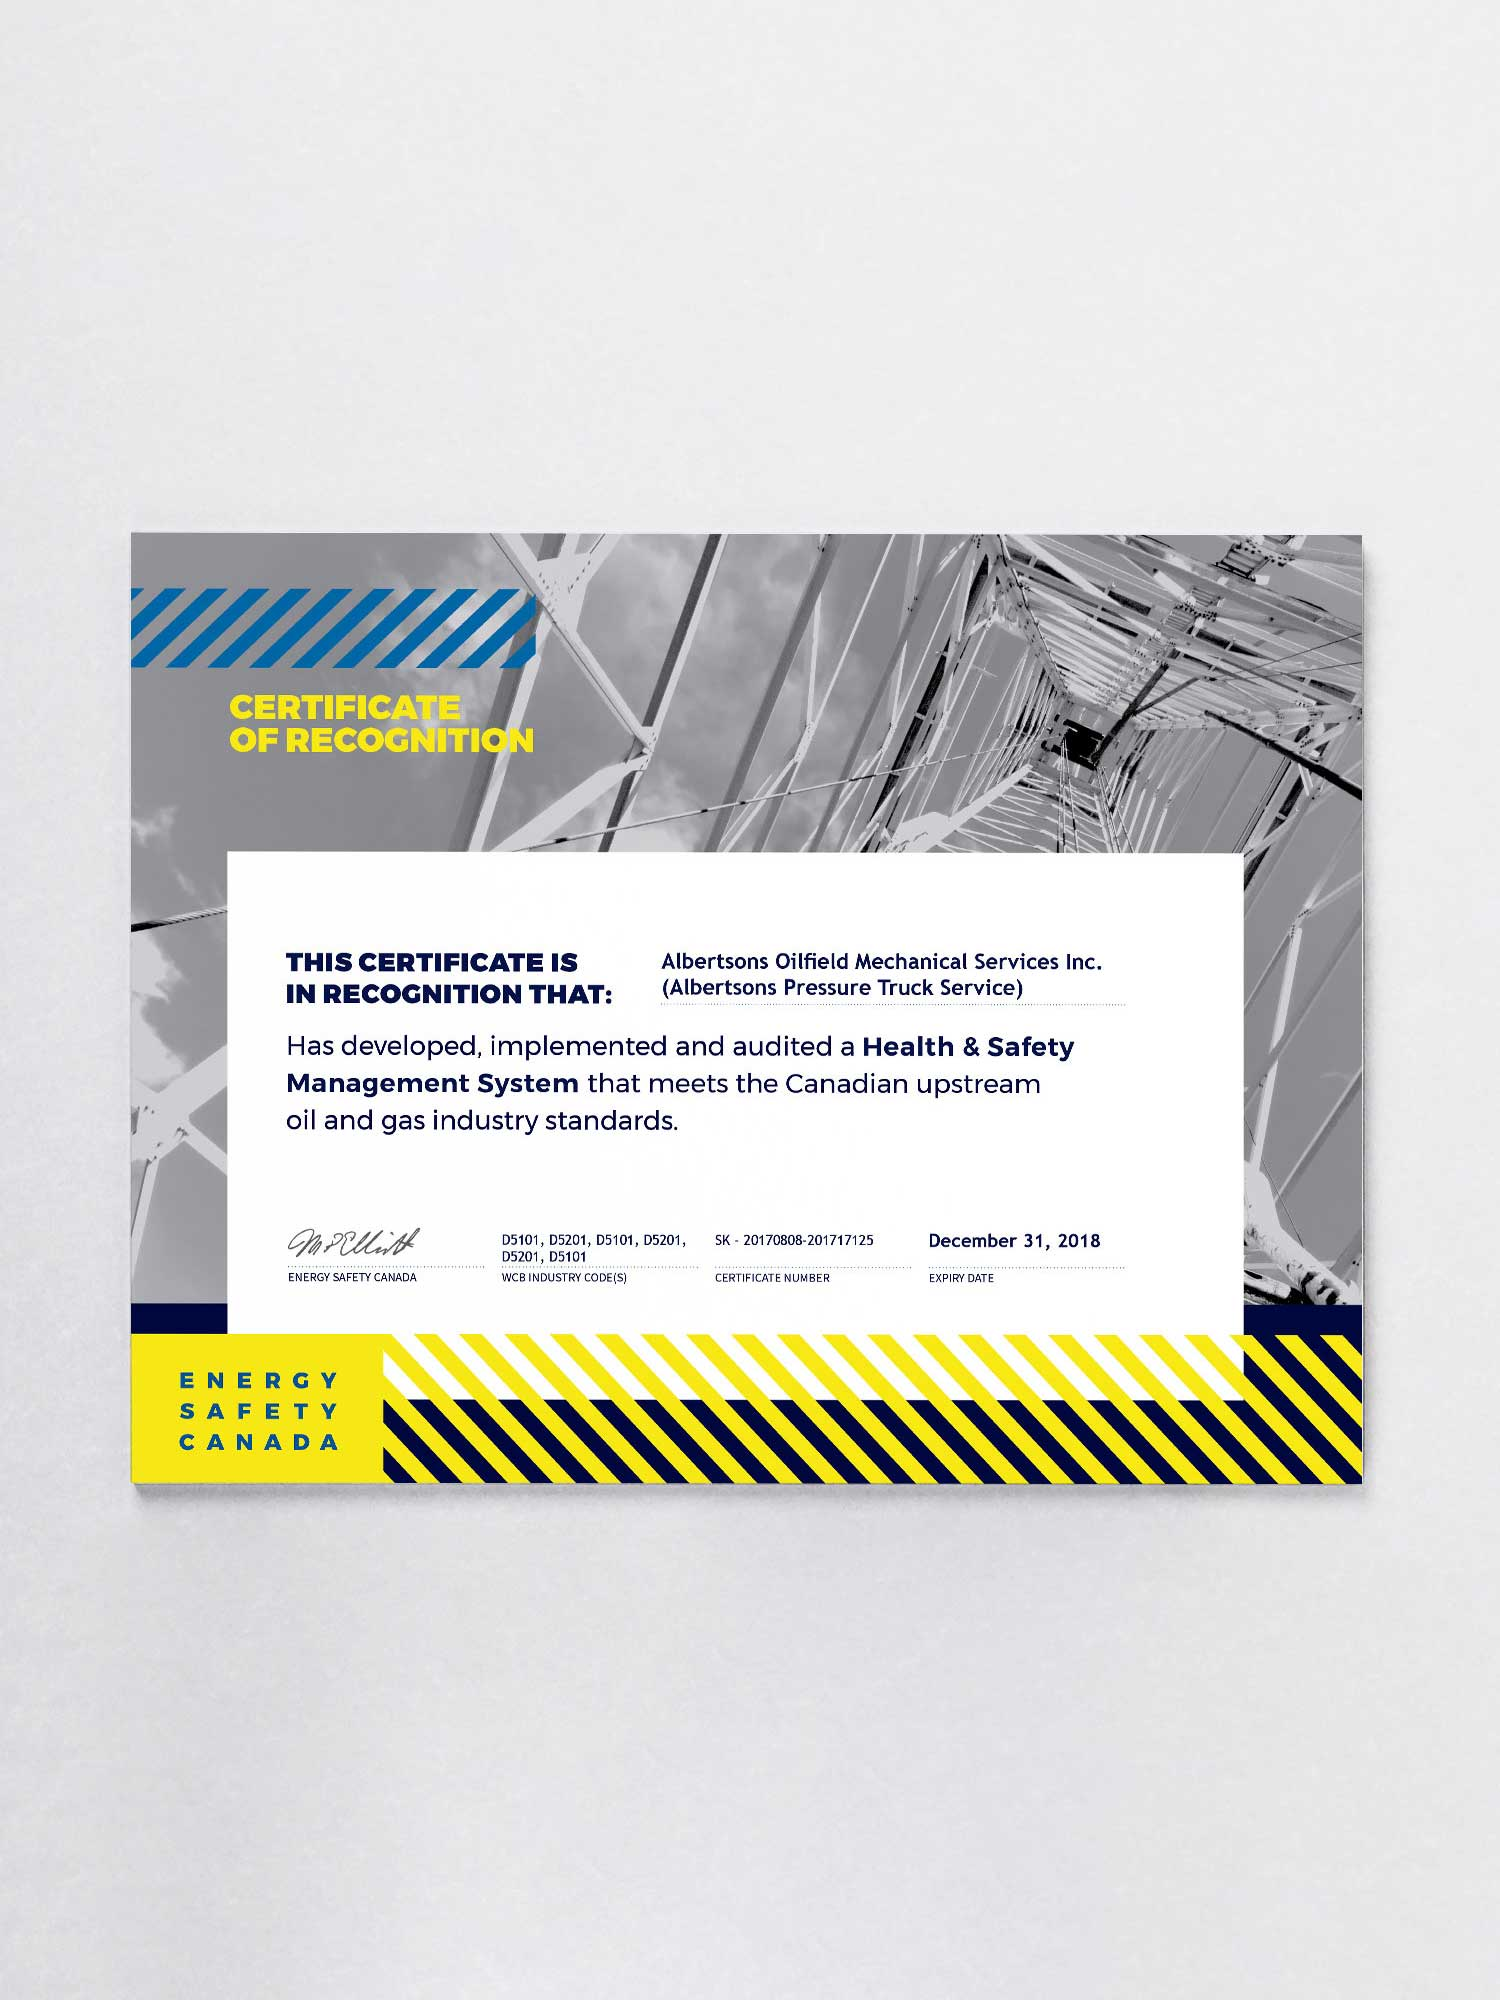 Certificate of recognition design for energy safety canada designed by studio forum